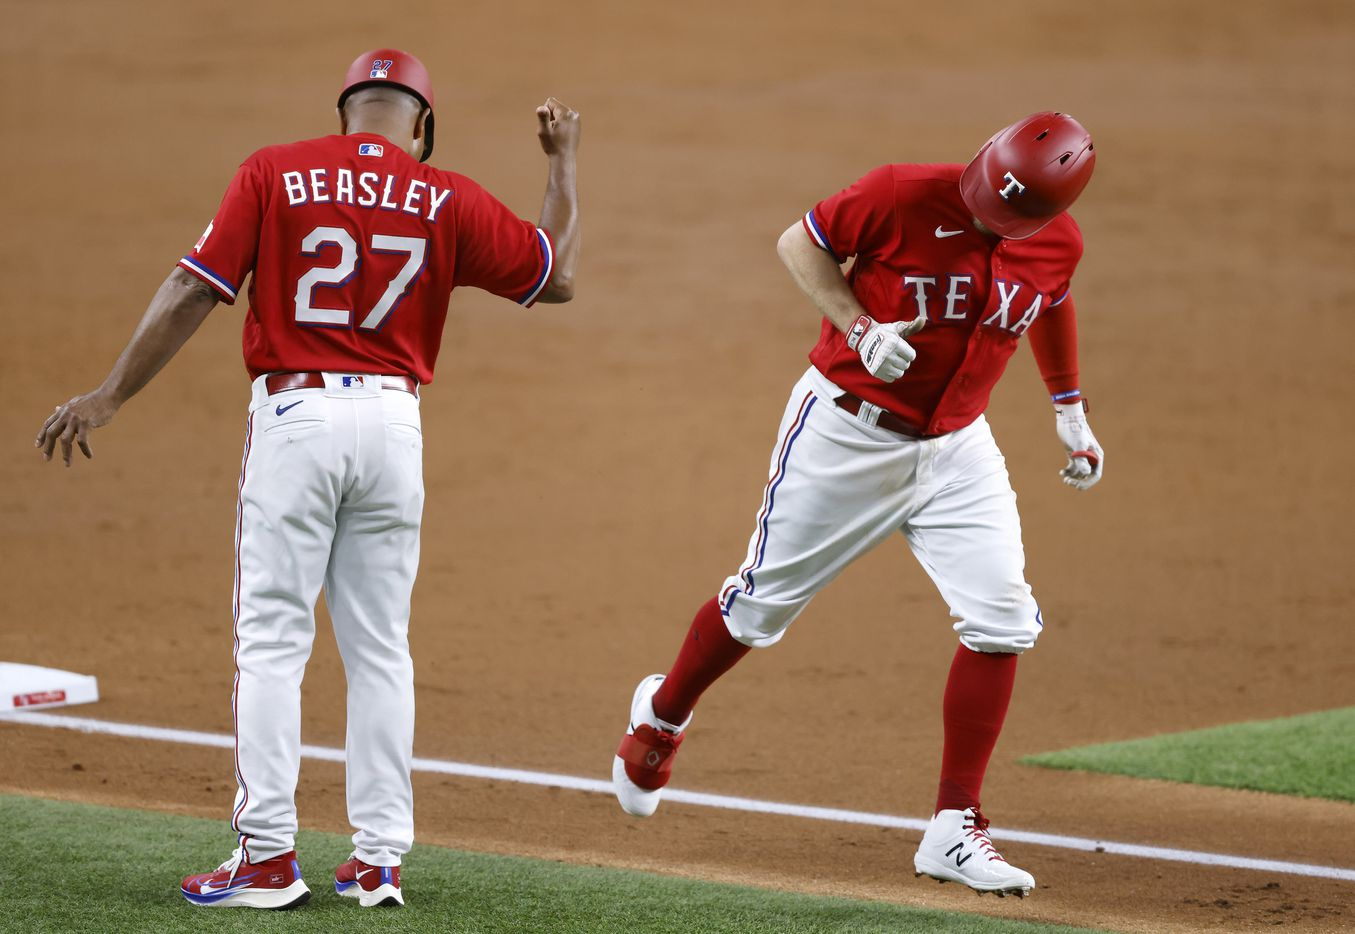 Texas Rangers batter Brock Holt (16) gives third base coach Tony Beasley (27) a thumbs up after hitting a solo home run against the Houston Astros in the third inning at Globe Life Field in Arlington, Texas, Friday, May 21, 2009. (Tom Fox/The Dallas Morning News)